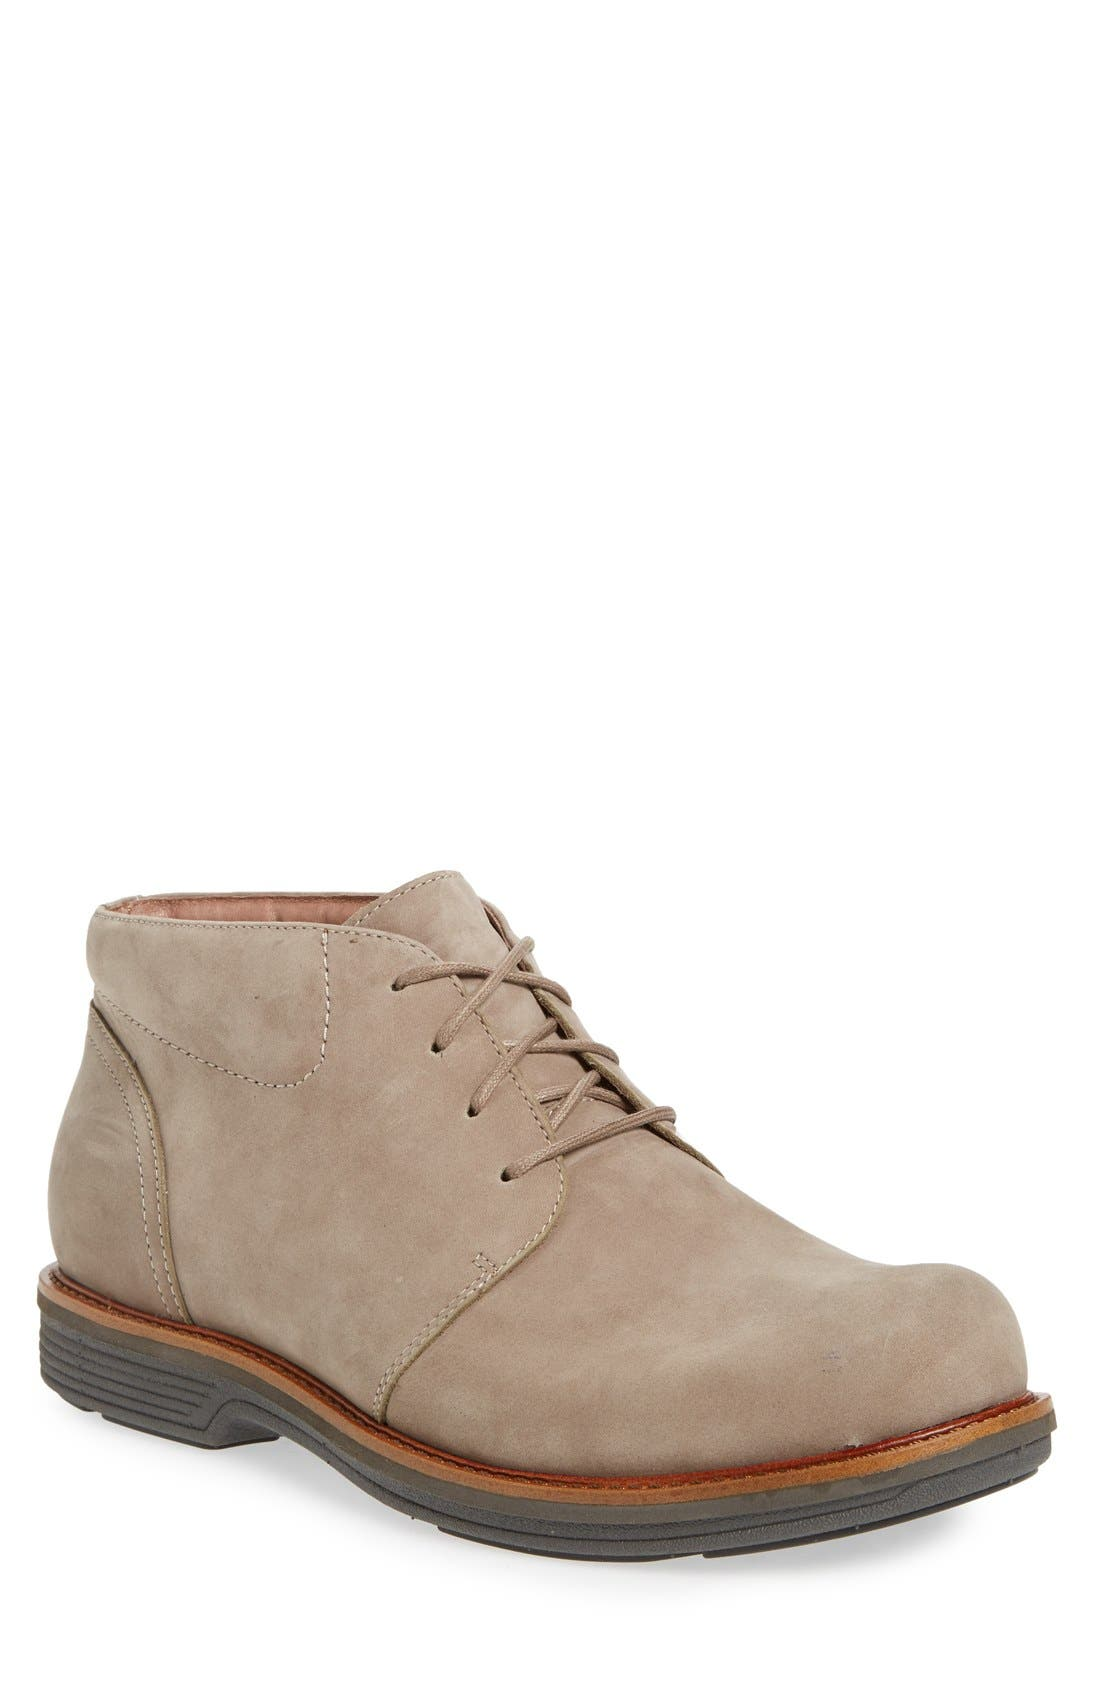 'Jake' Chukka Boot,                         Main,                         color, Taupe Milled Nubuck Leather